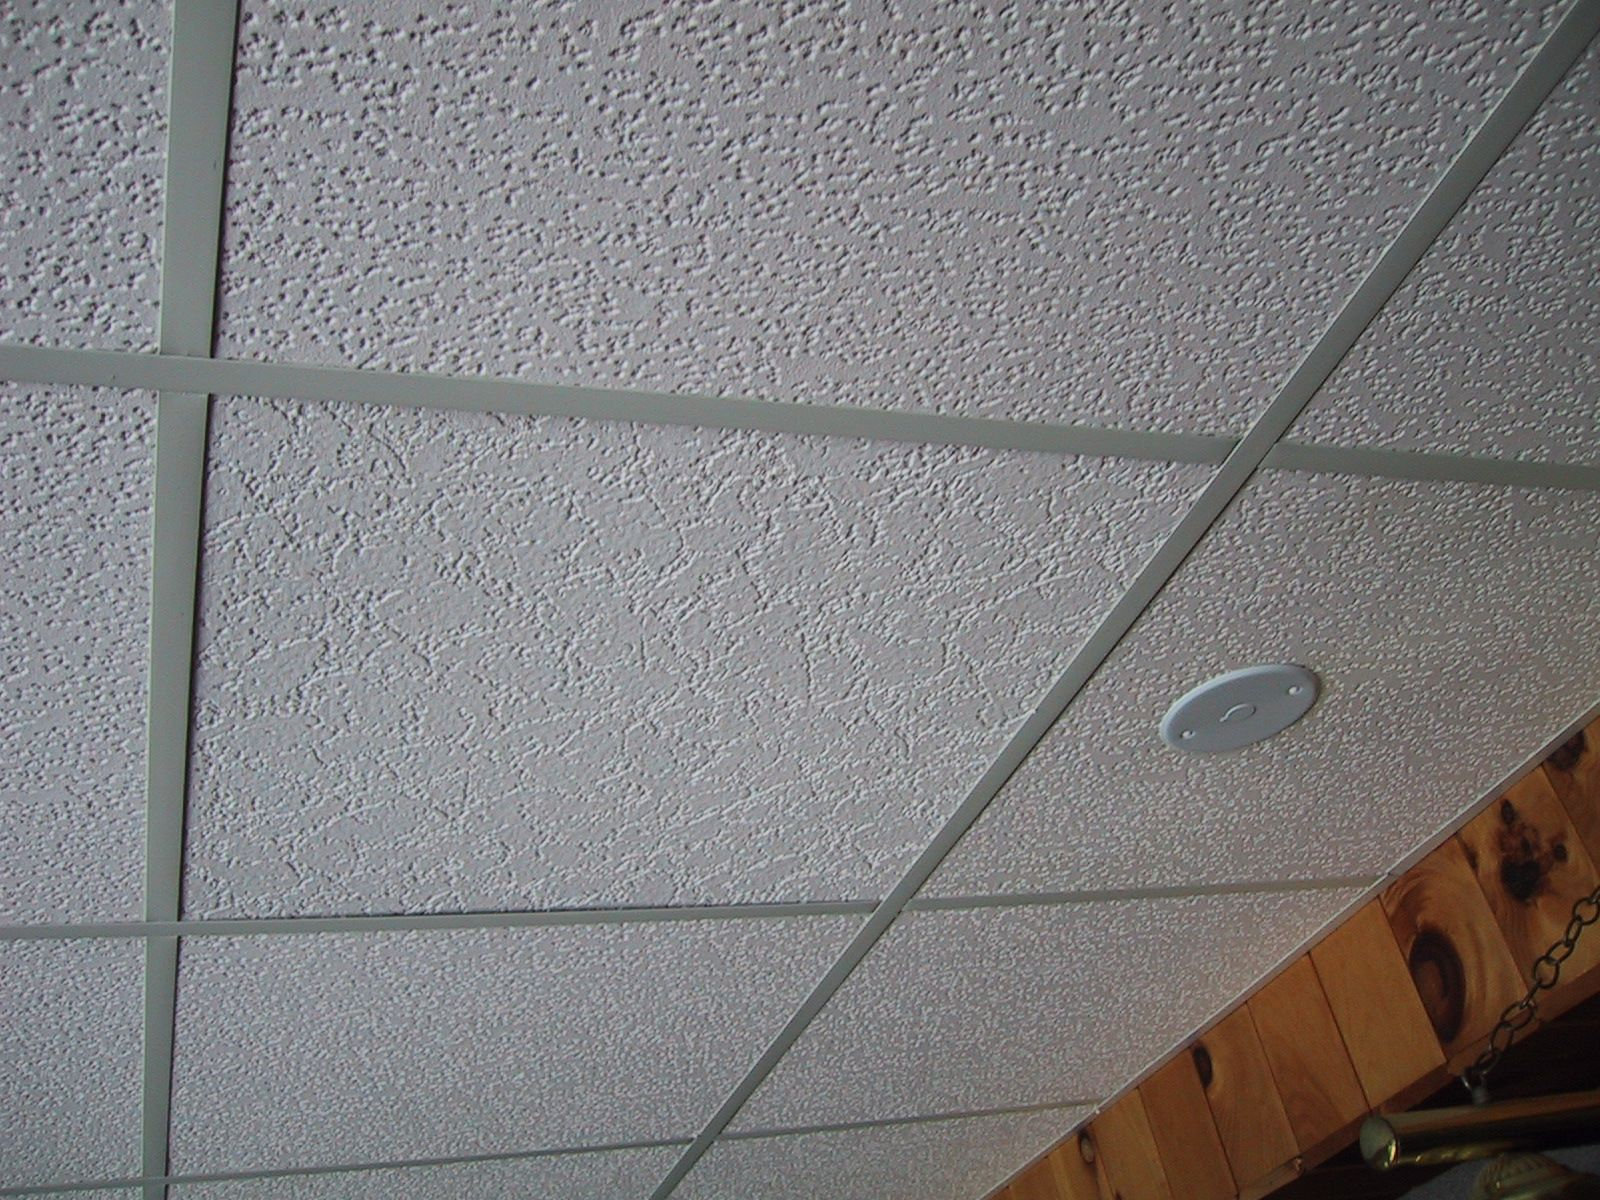 residential hei en crop ceiling us abp compare systems tiles room wid suspended fit moisture ceilings resistant armstrong dropped